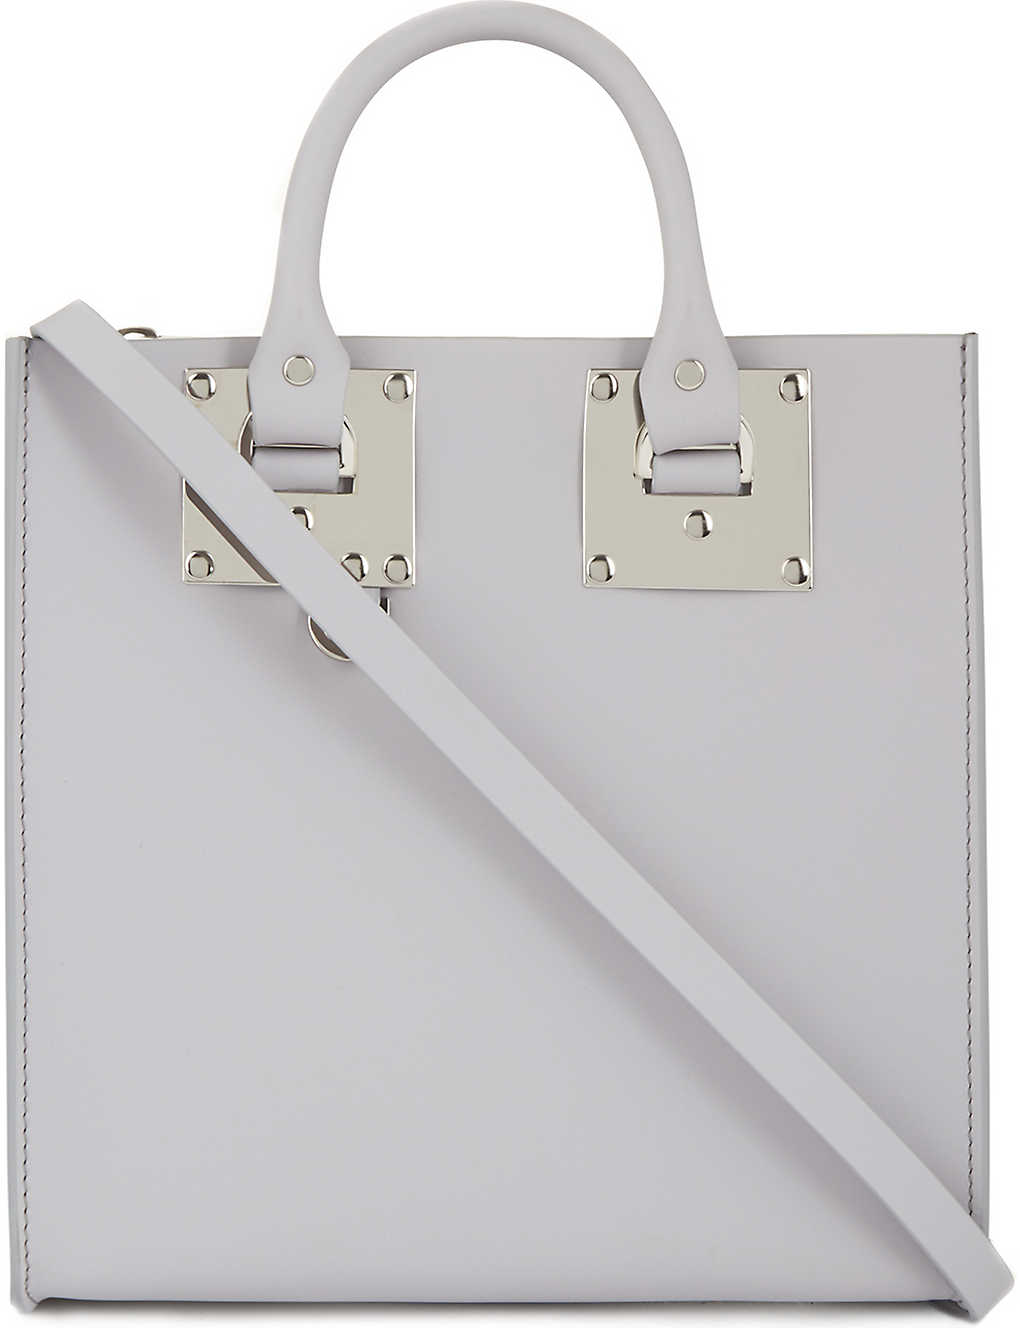 SOPHIE HULME - Albion square leather tote  d009f11b10a28